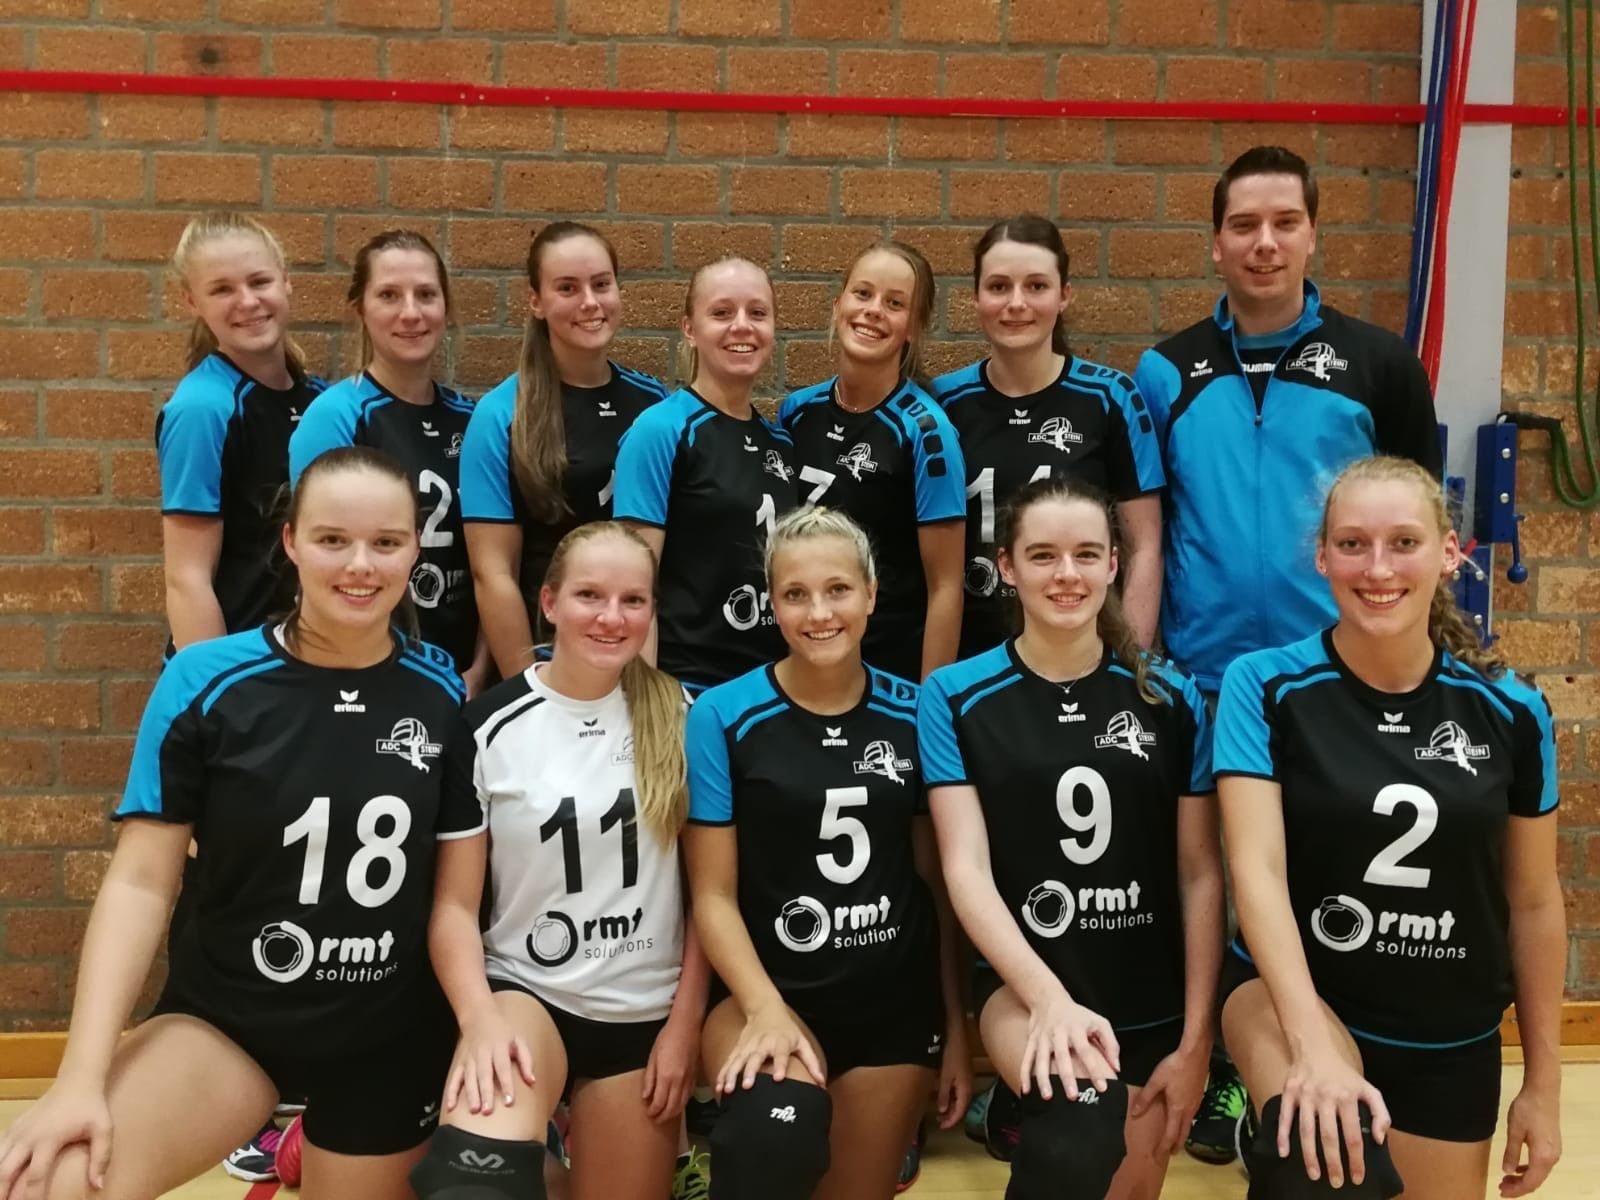 https://www.adc-stein.nl/wp-content/uploads/2018/09/2018-2019-DAMES-2.jpg